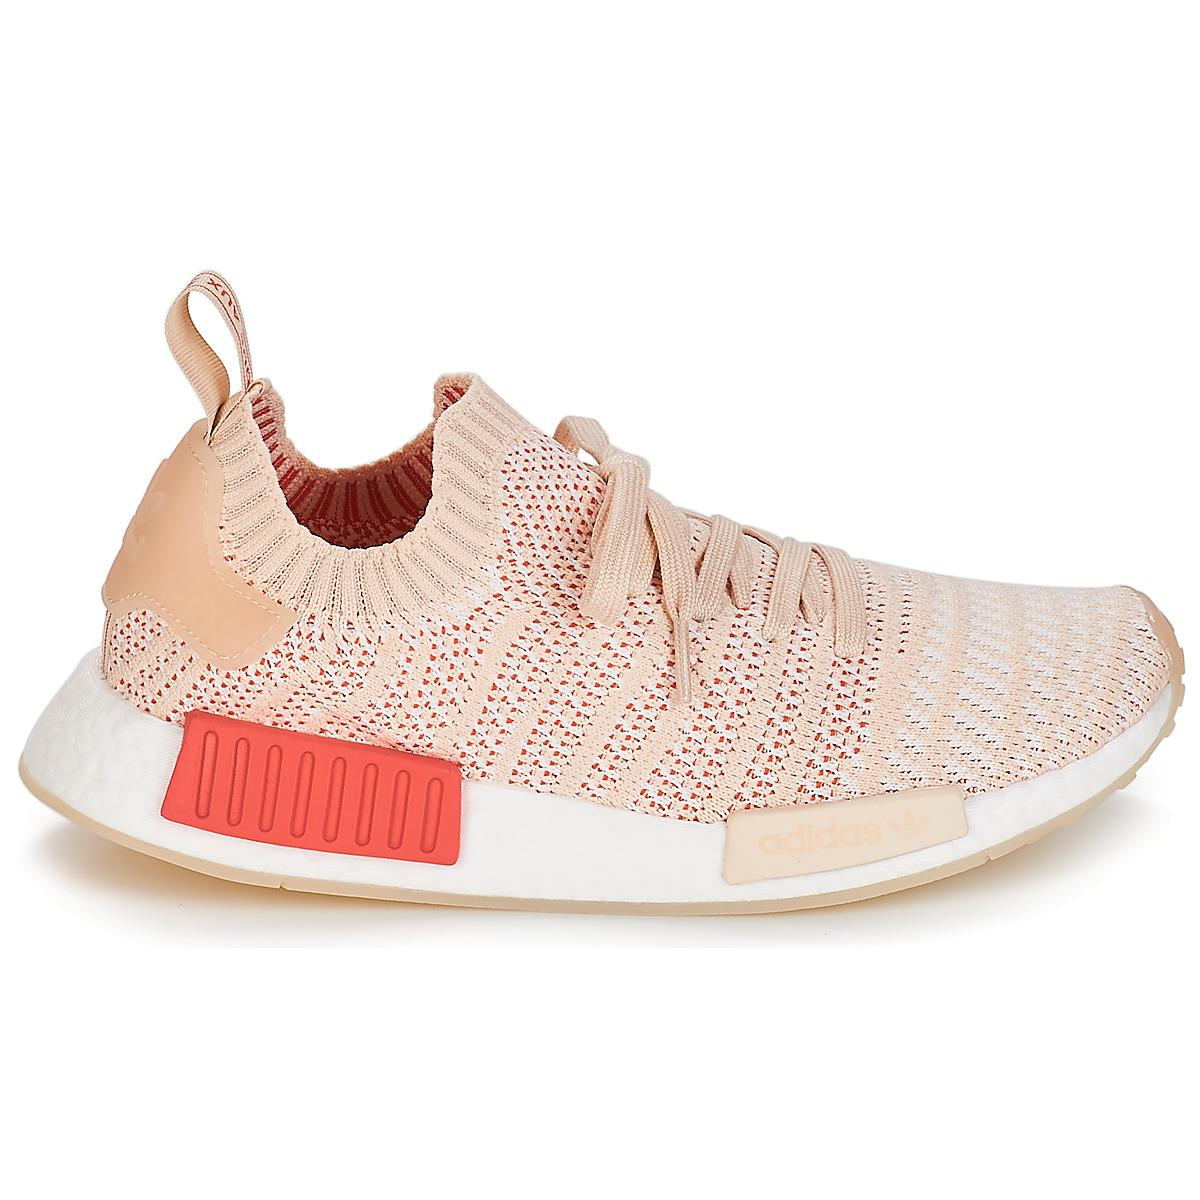 41e23514d1e80 Adidas - Pink Nmd R1 Stlt Pk W Women s Shoes (trainers) In Multicolour -.  View fullscreen